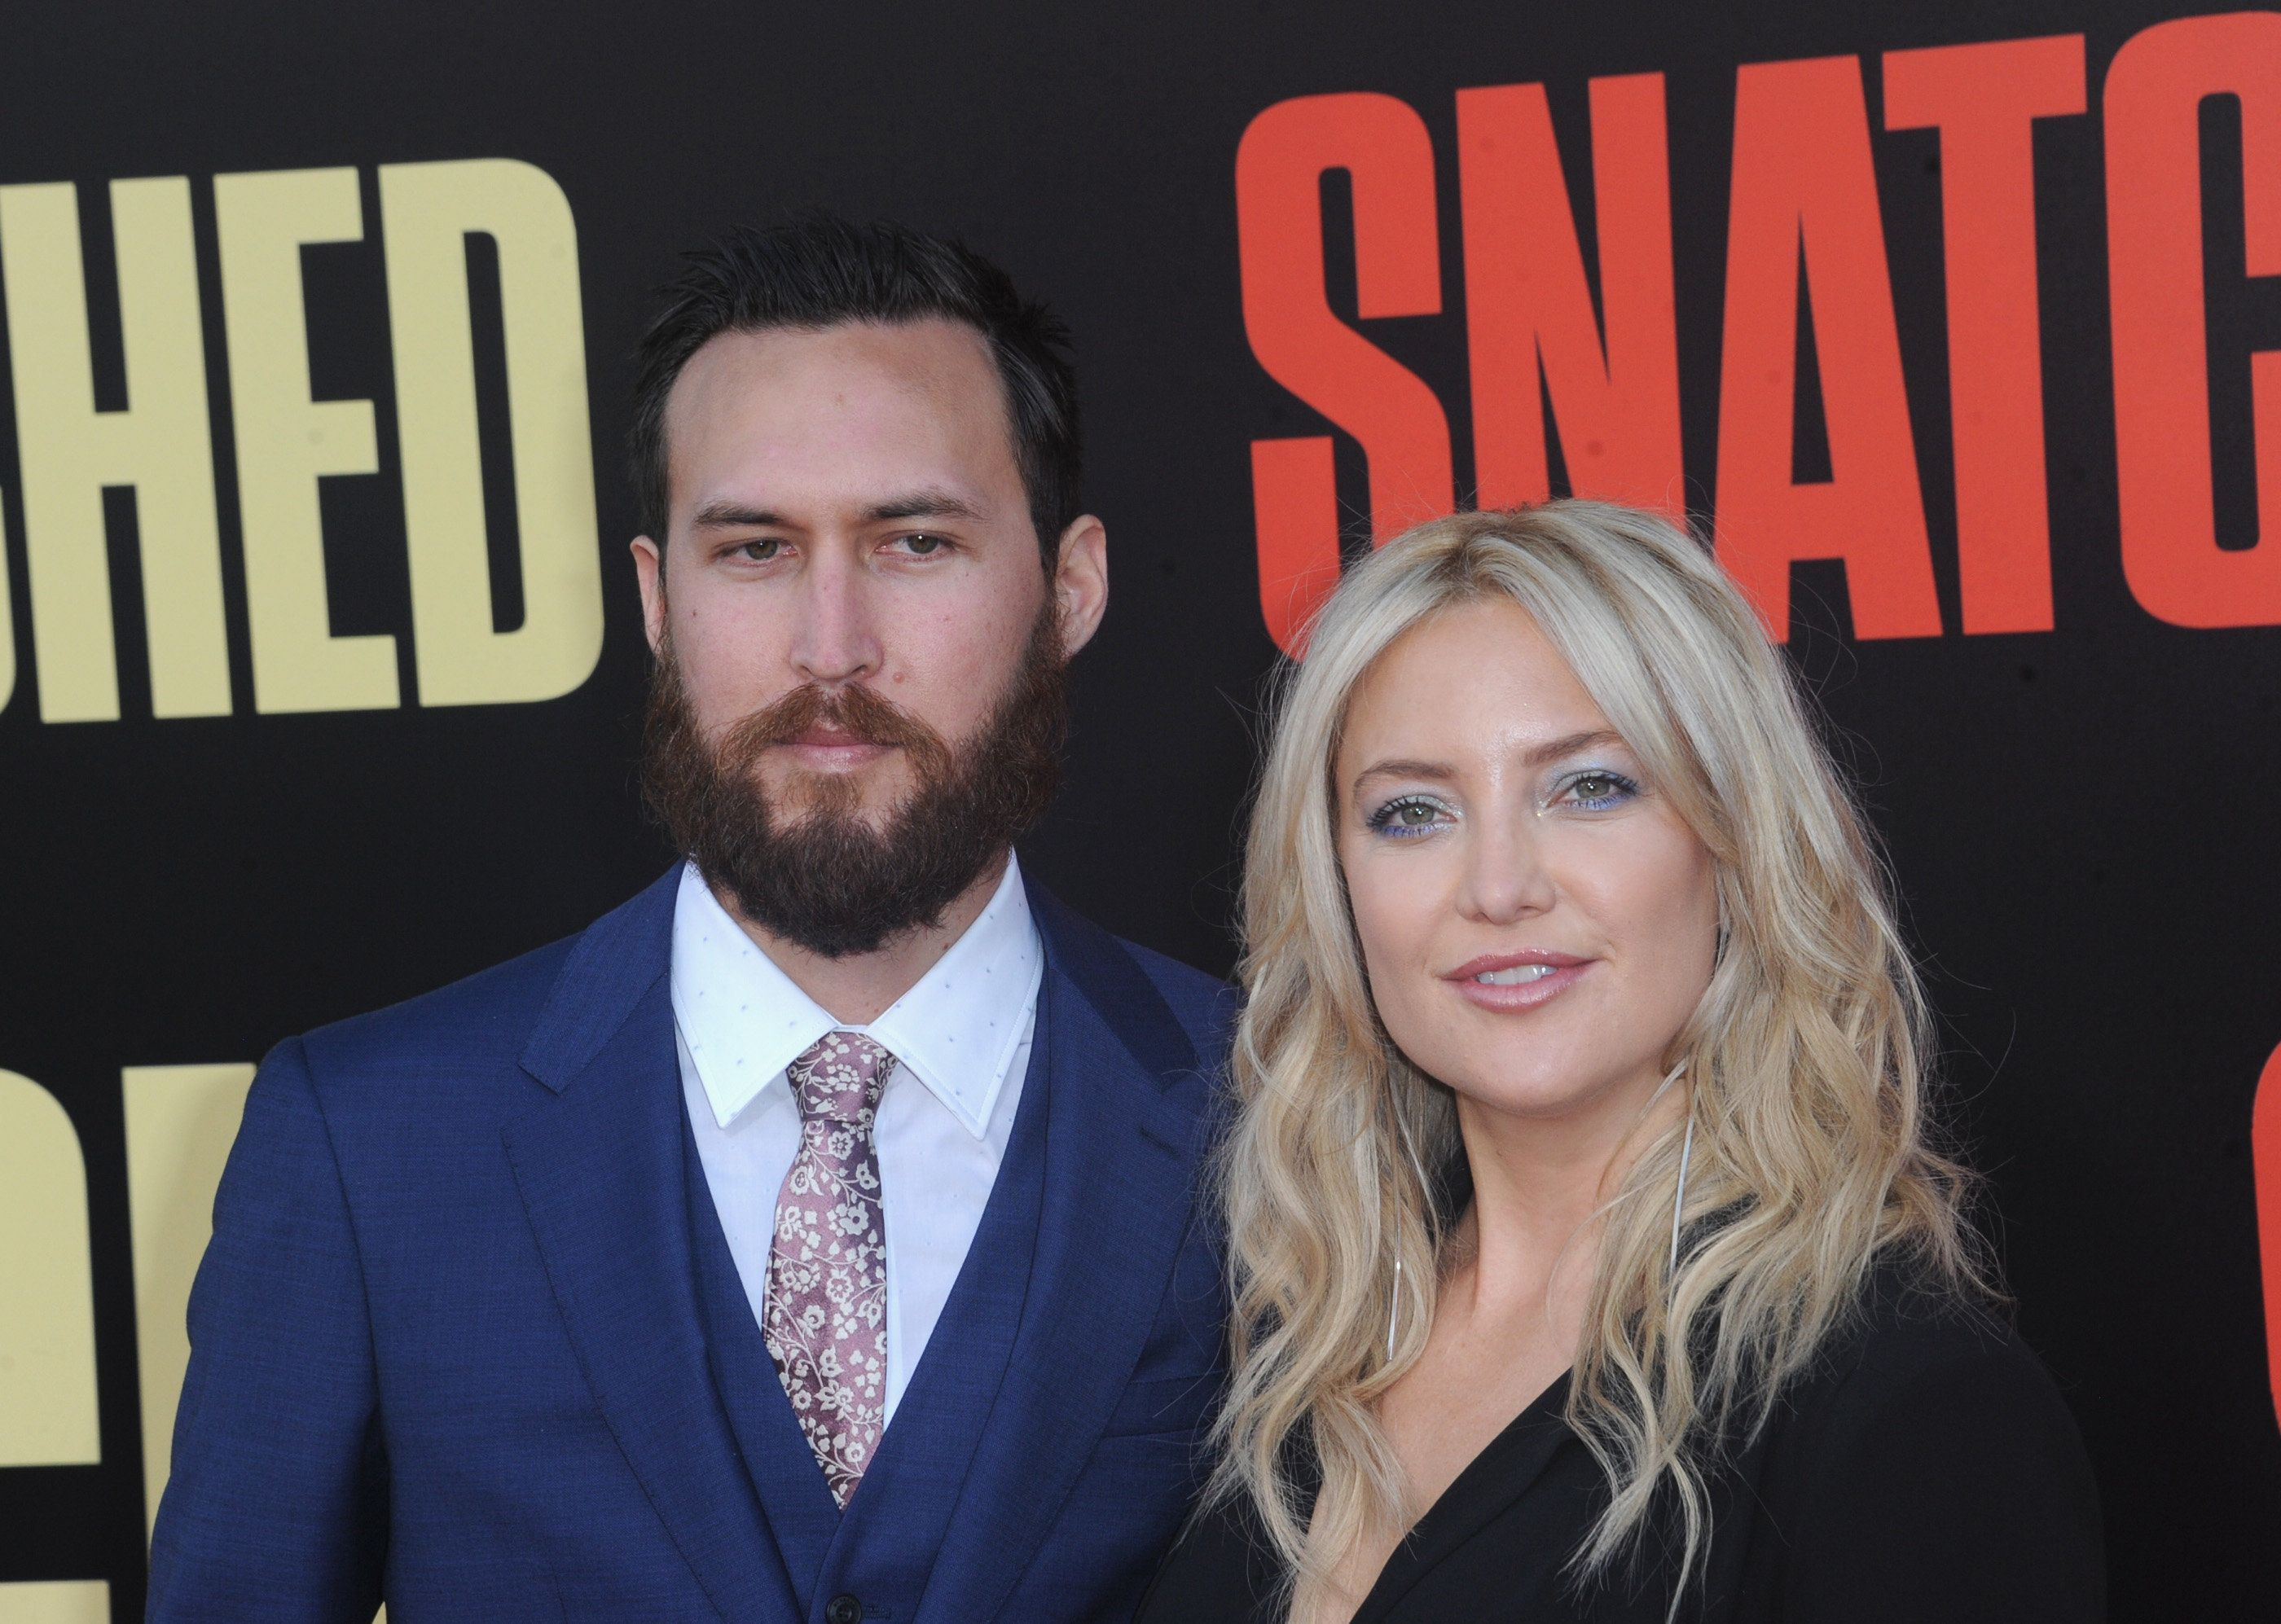 Kate Hudson is pregnant, expecting daughter with boyfriend Danny Fujikawa